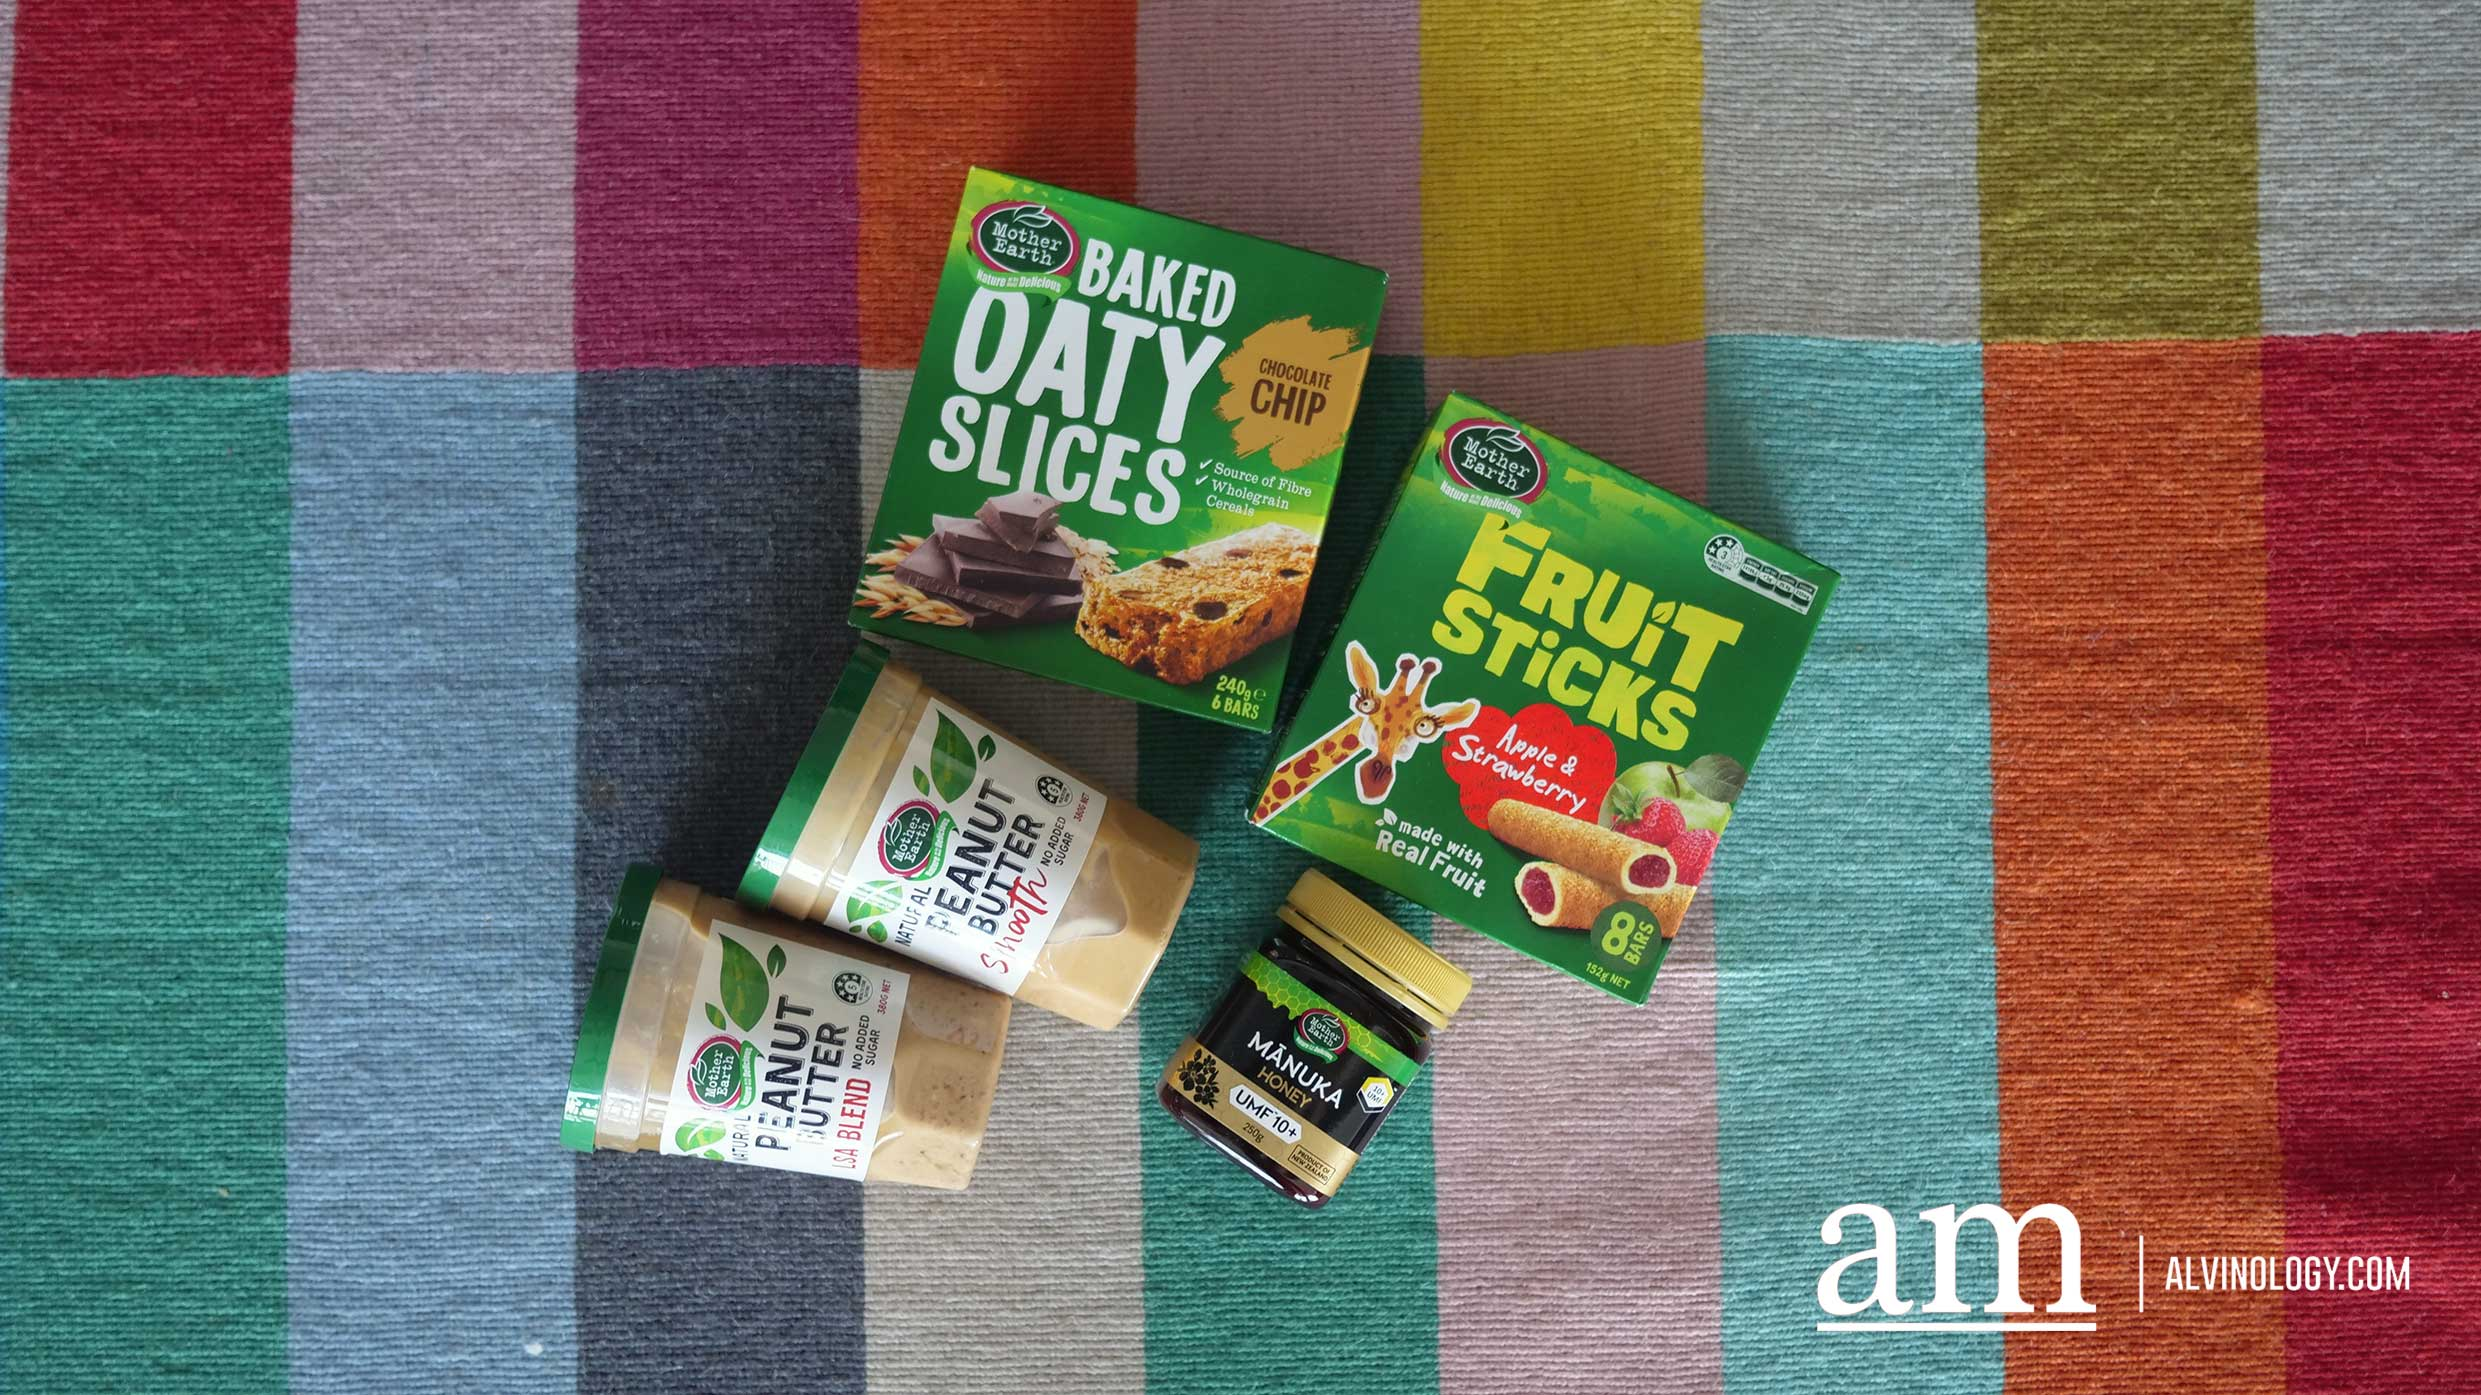 [Giveaway] Wholesome, Minimally-processed Food Products from Mother Earth are Just What You Need for Healthy Snacks - Alvinology